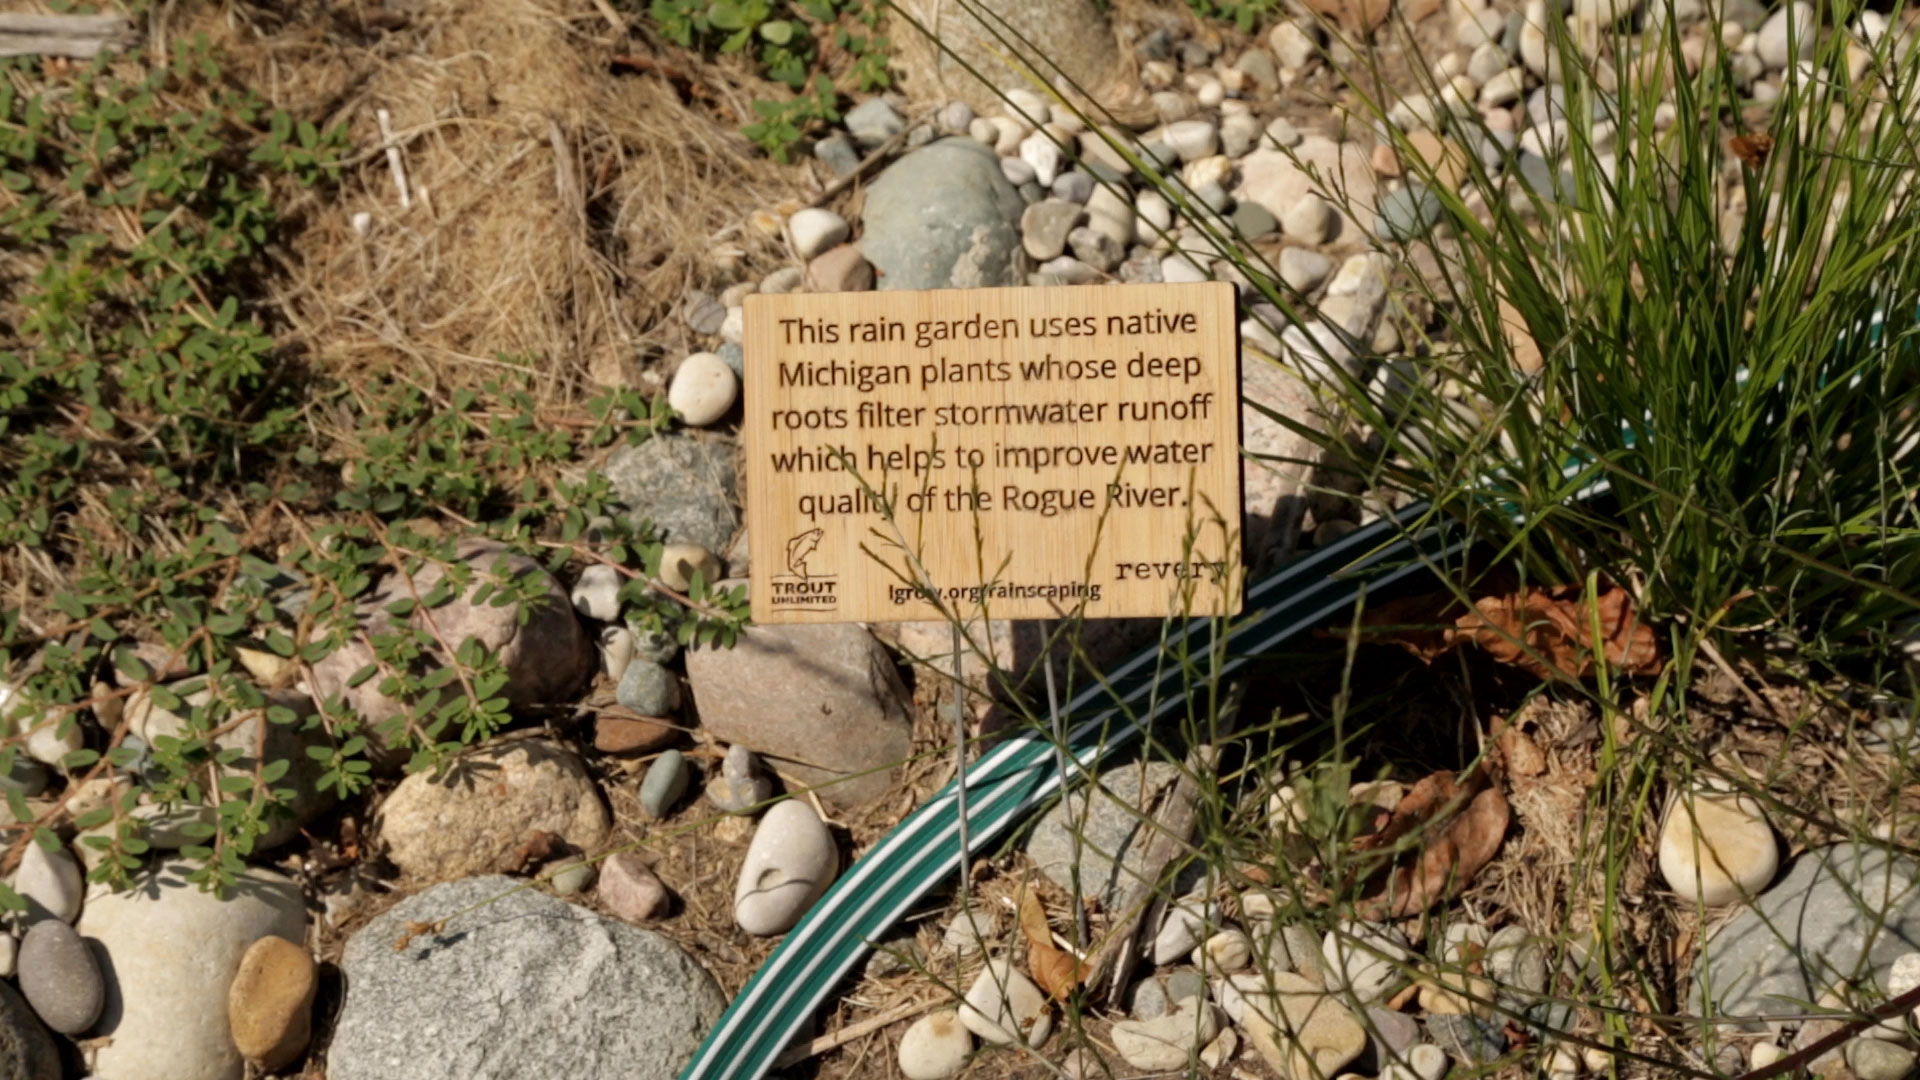 WMCAT – Trout Unlimited and the Rogue River Watershed